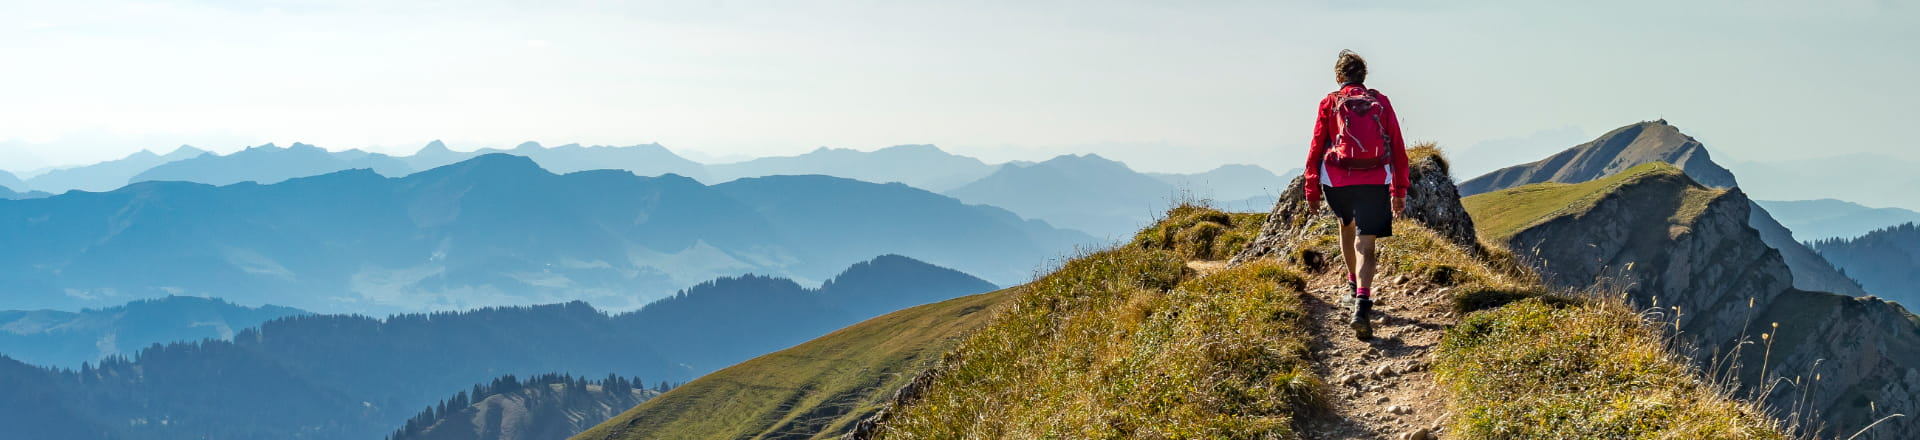 Hiker leading the way at the top of a mountain